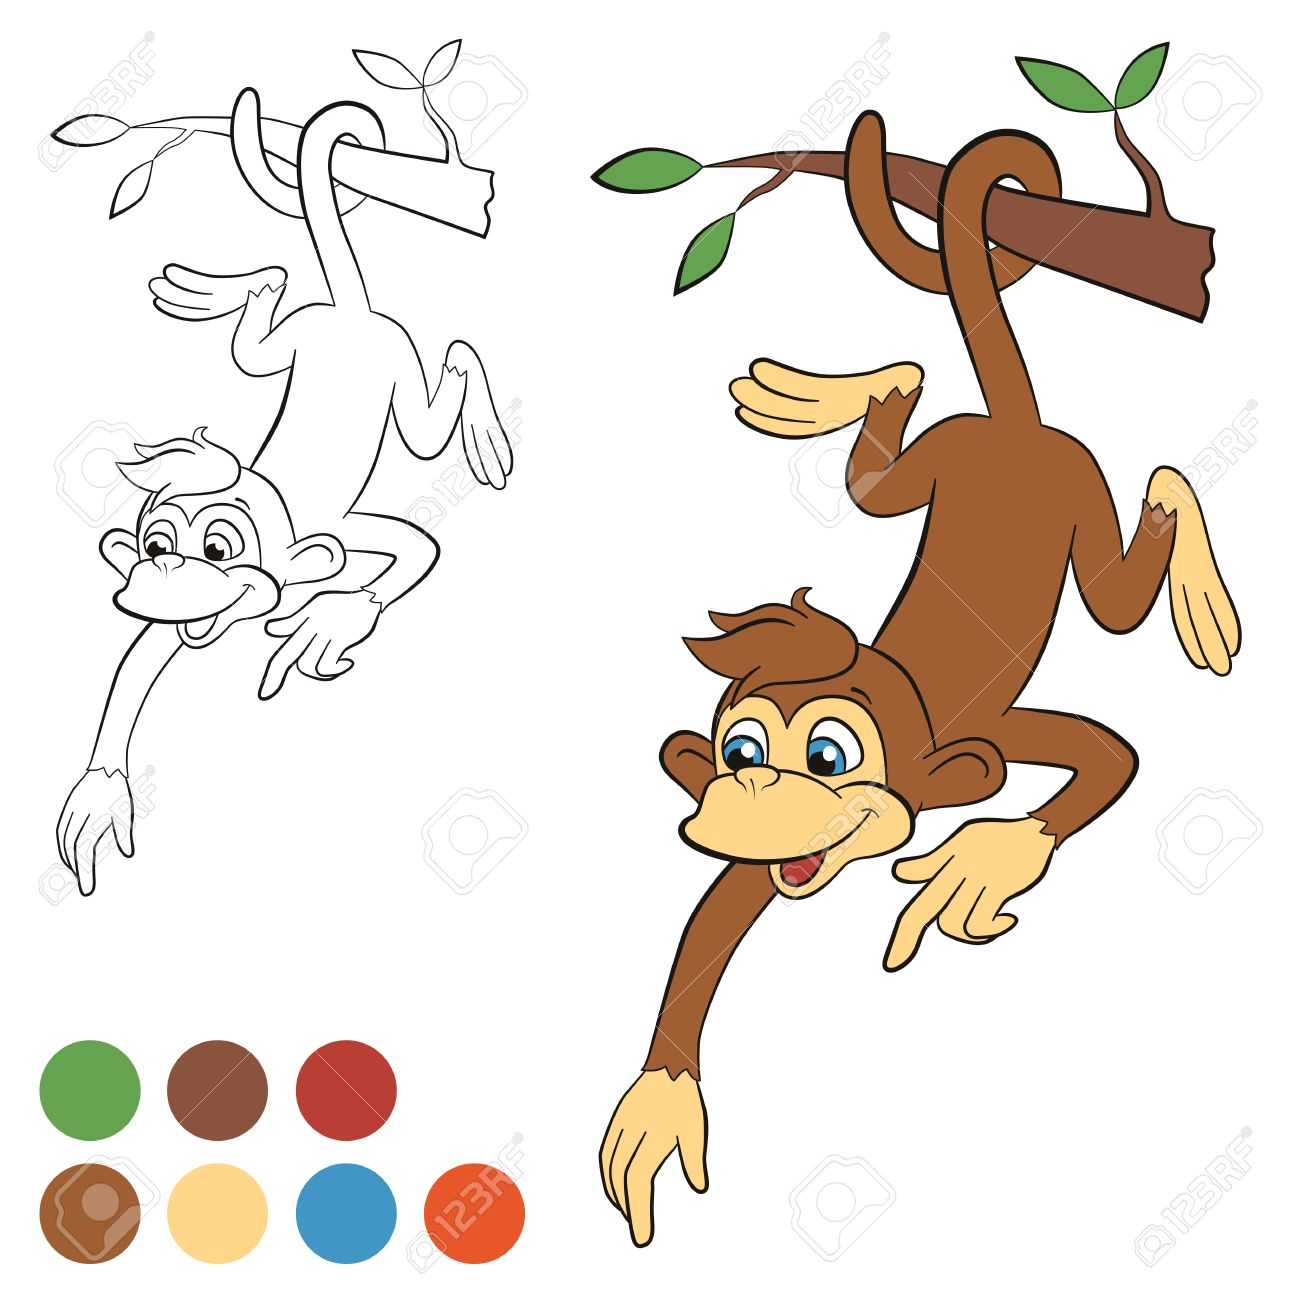 Coloring Page Color Me Monkey Little Cute Hanging On The Tree And